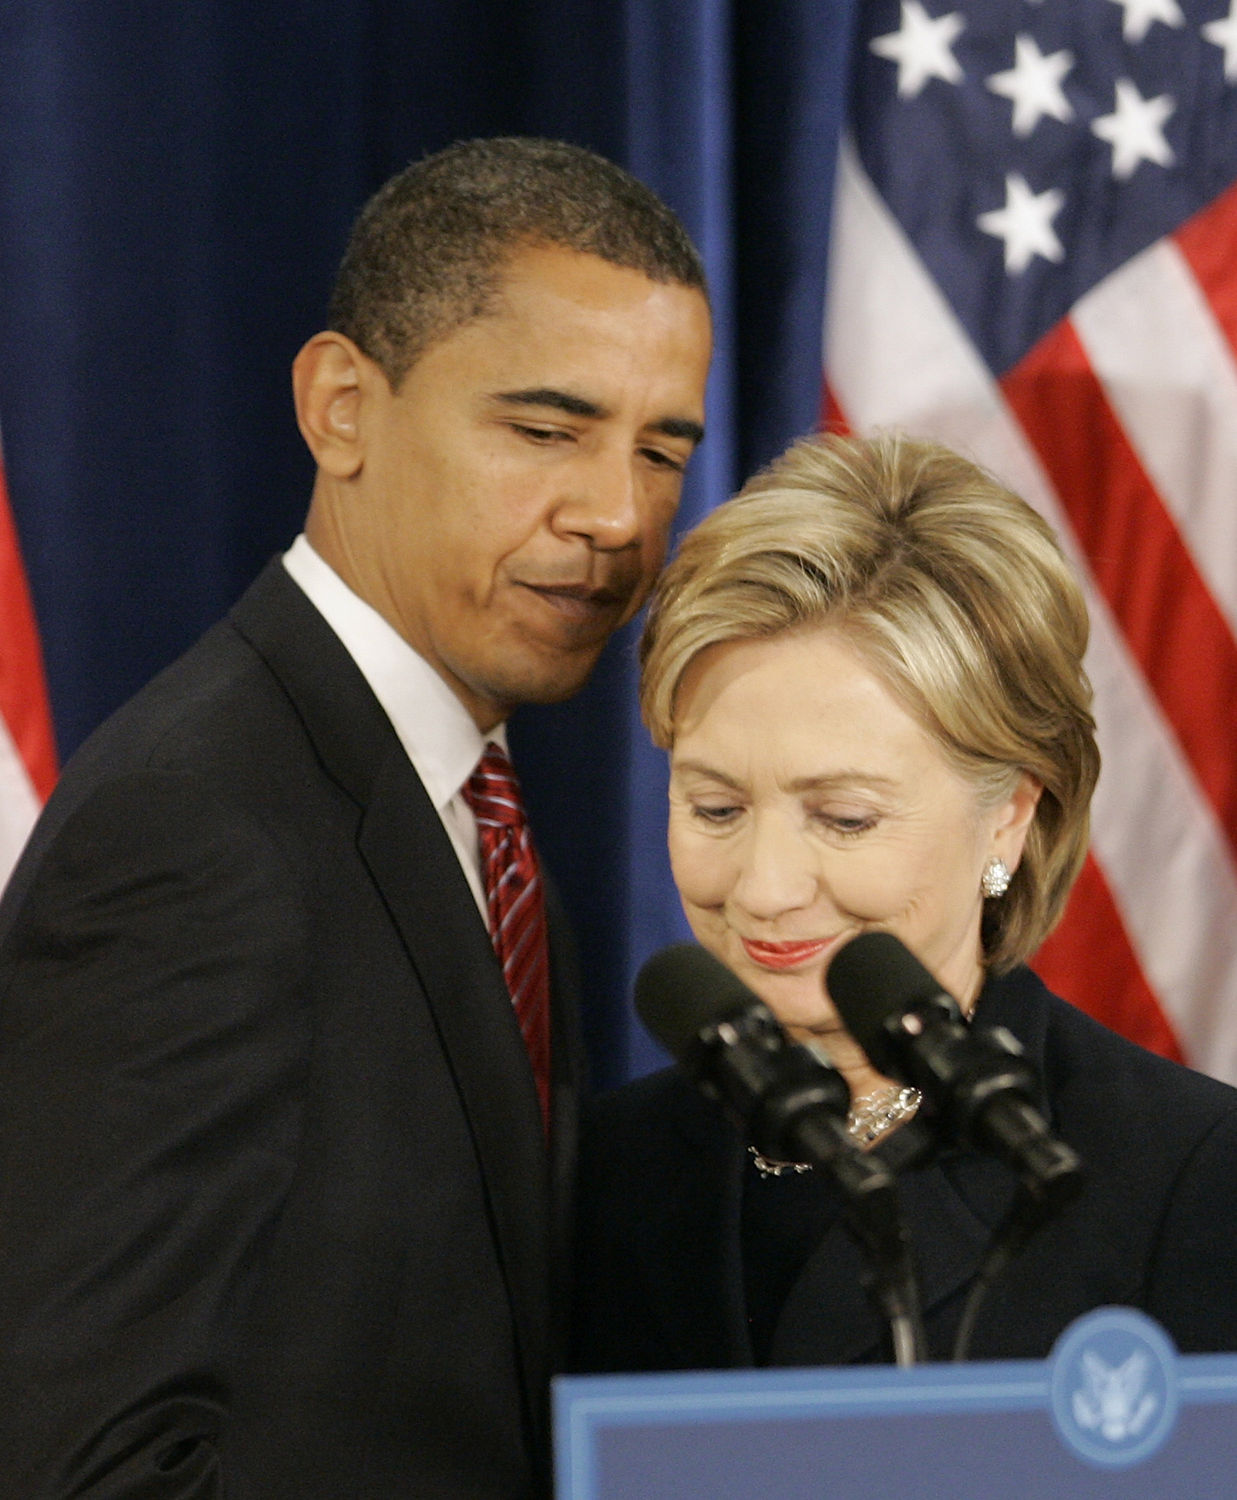 President-elect Barack Obama (L) introduces Secretary of State designee Sen. Hillary Clinton (D-NY) during a news conference announcing his national security team on December 1, 2008 in Chicago. In addition to Clinton, Obama also named Arizona Gov. Janet Nepolitano as homeland security secretary, ret. Marine Gen. James L. Jones as national security advisor, Susan Rice as ambassador to the United Nations, Eric Holder as attorney general and announced that Robert Gates, the current Secretary of Defense, will stay on in his post under the new administration. (UPI Photo/Brian Kersey)